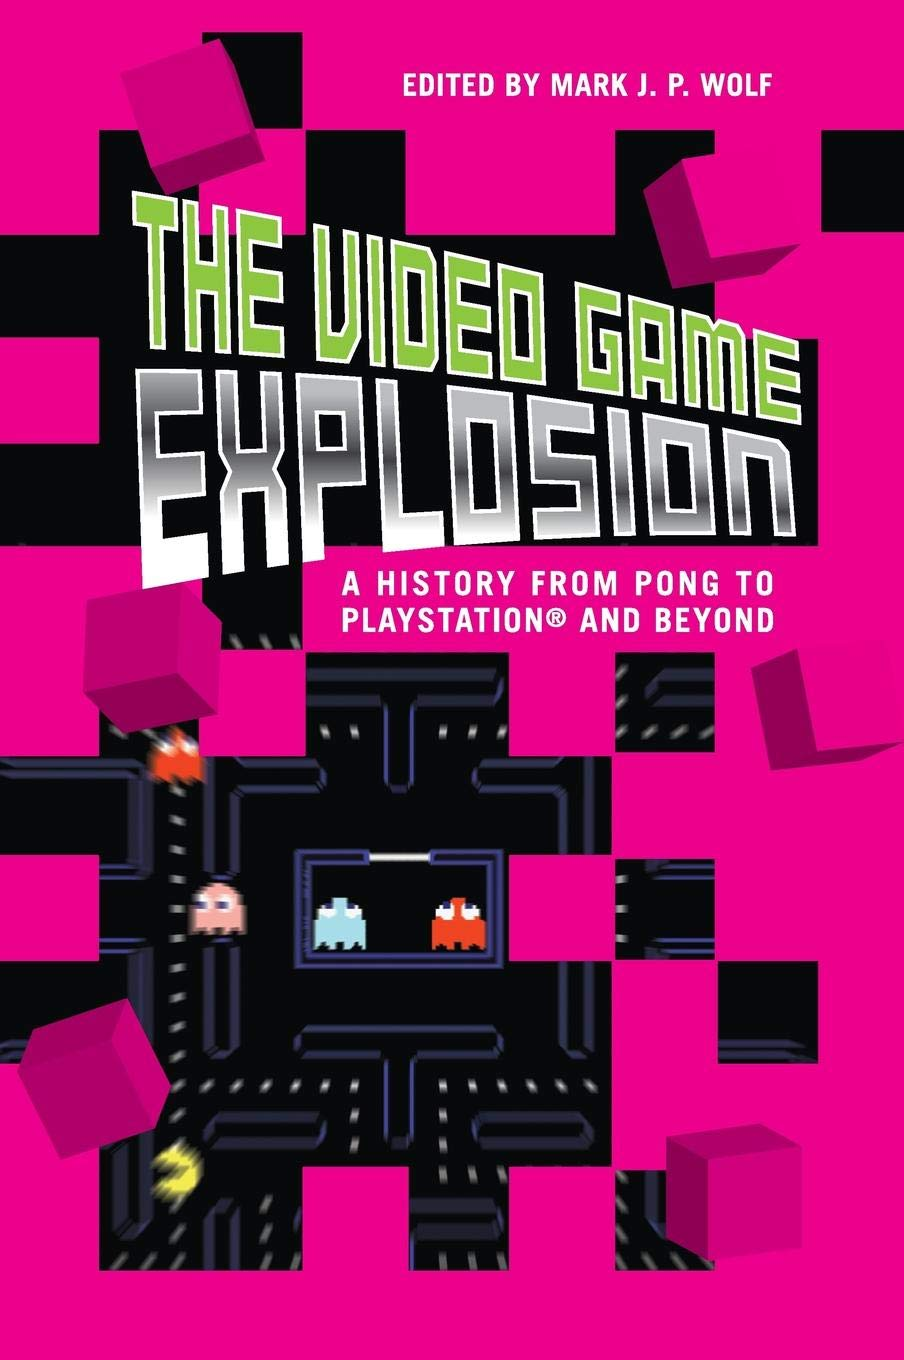 The Video Game Explosion: A History from Pong to Playstation